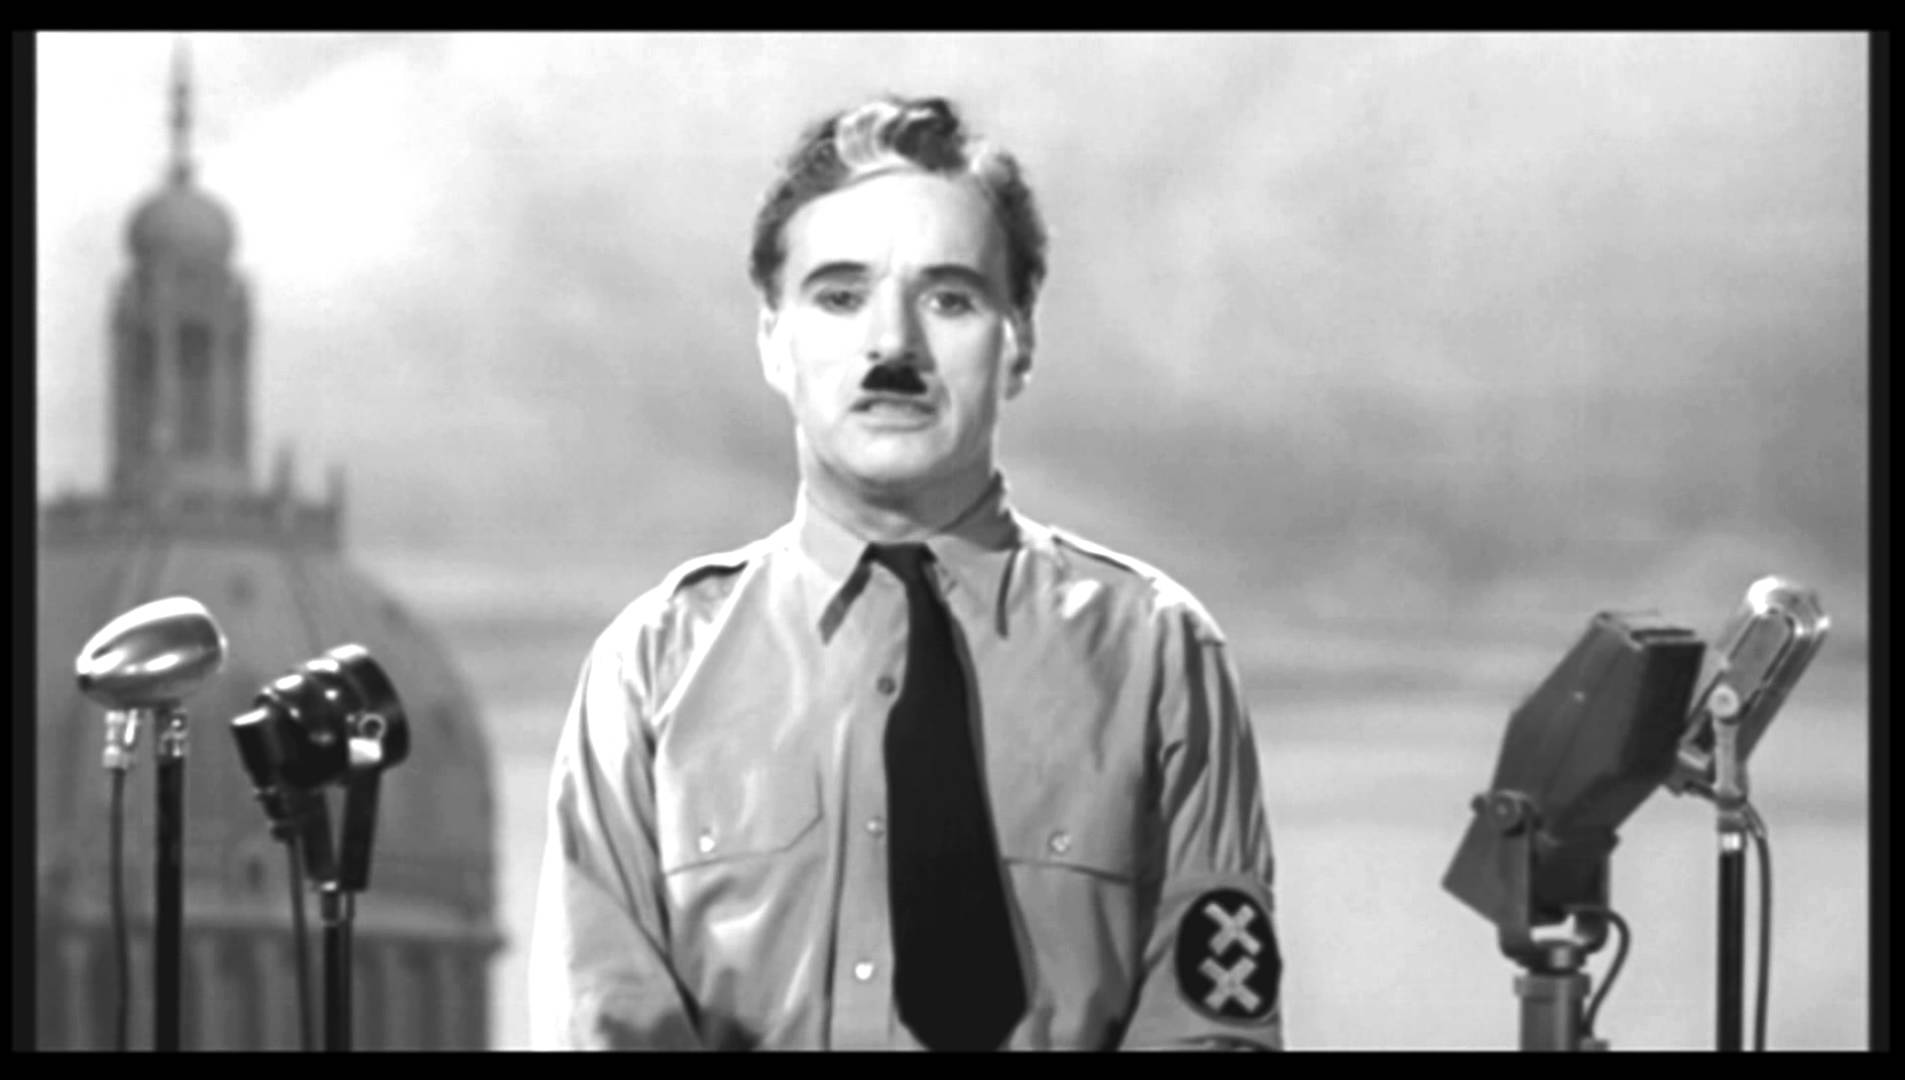 The Great Dictator is an absolute classic and contains one of the greatest speeches ever written.